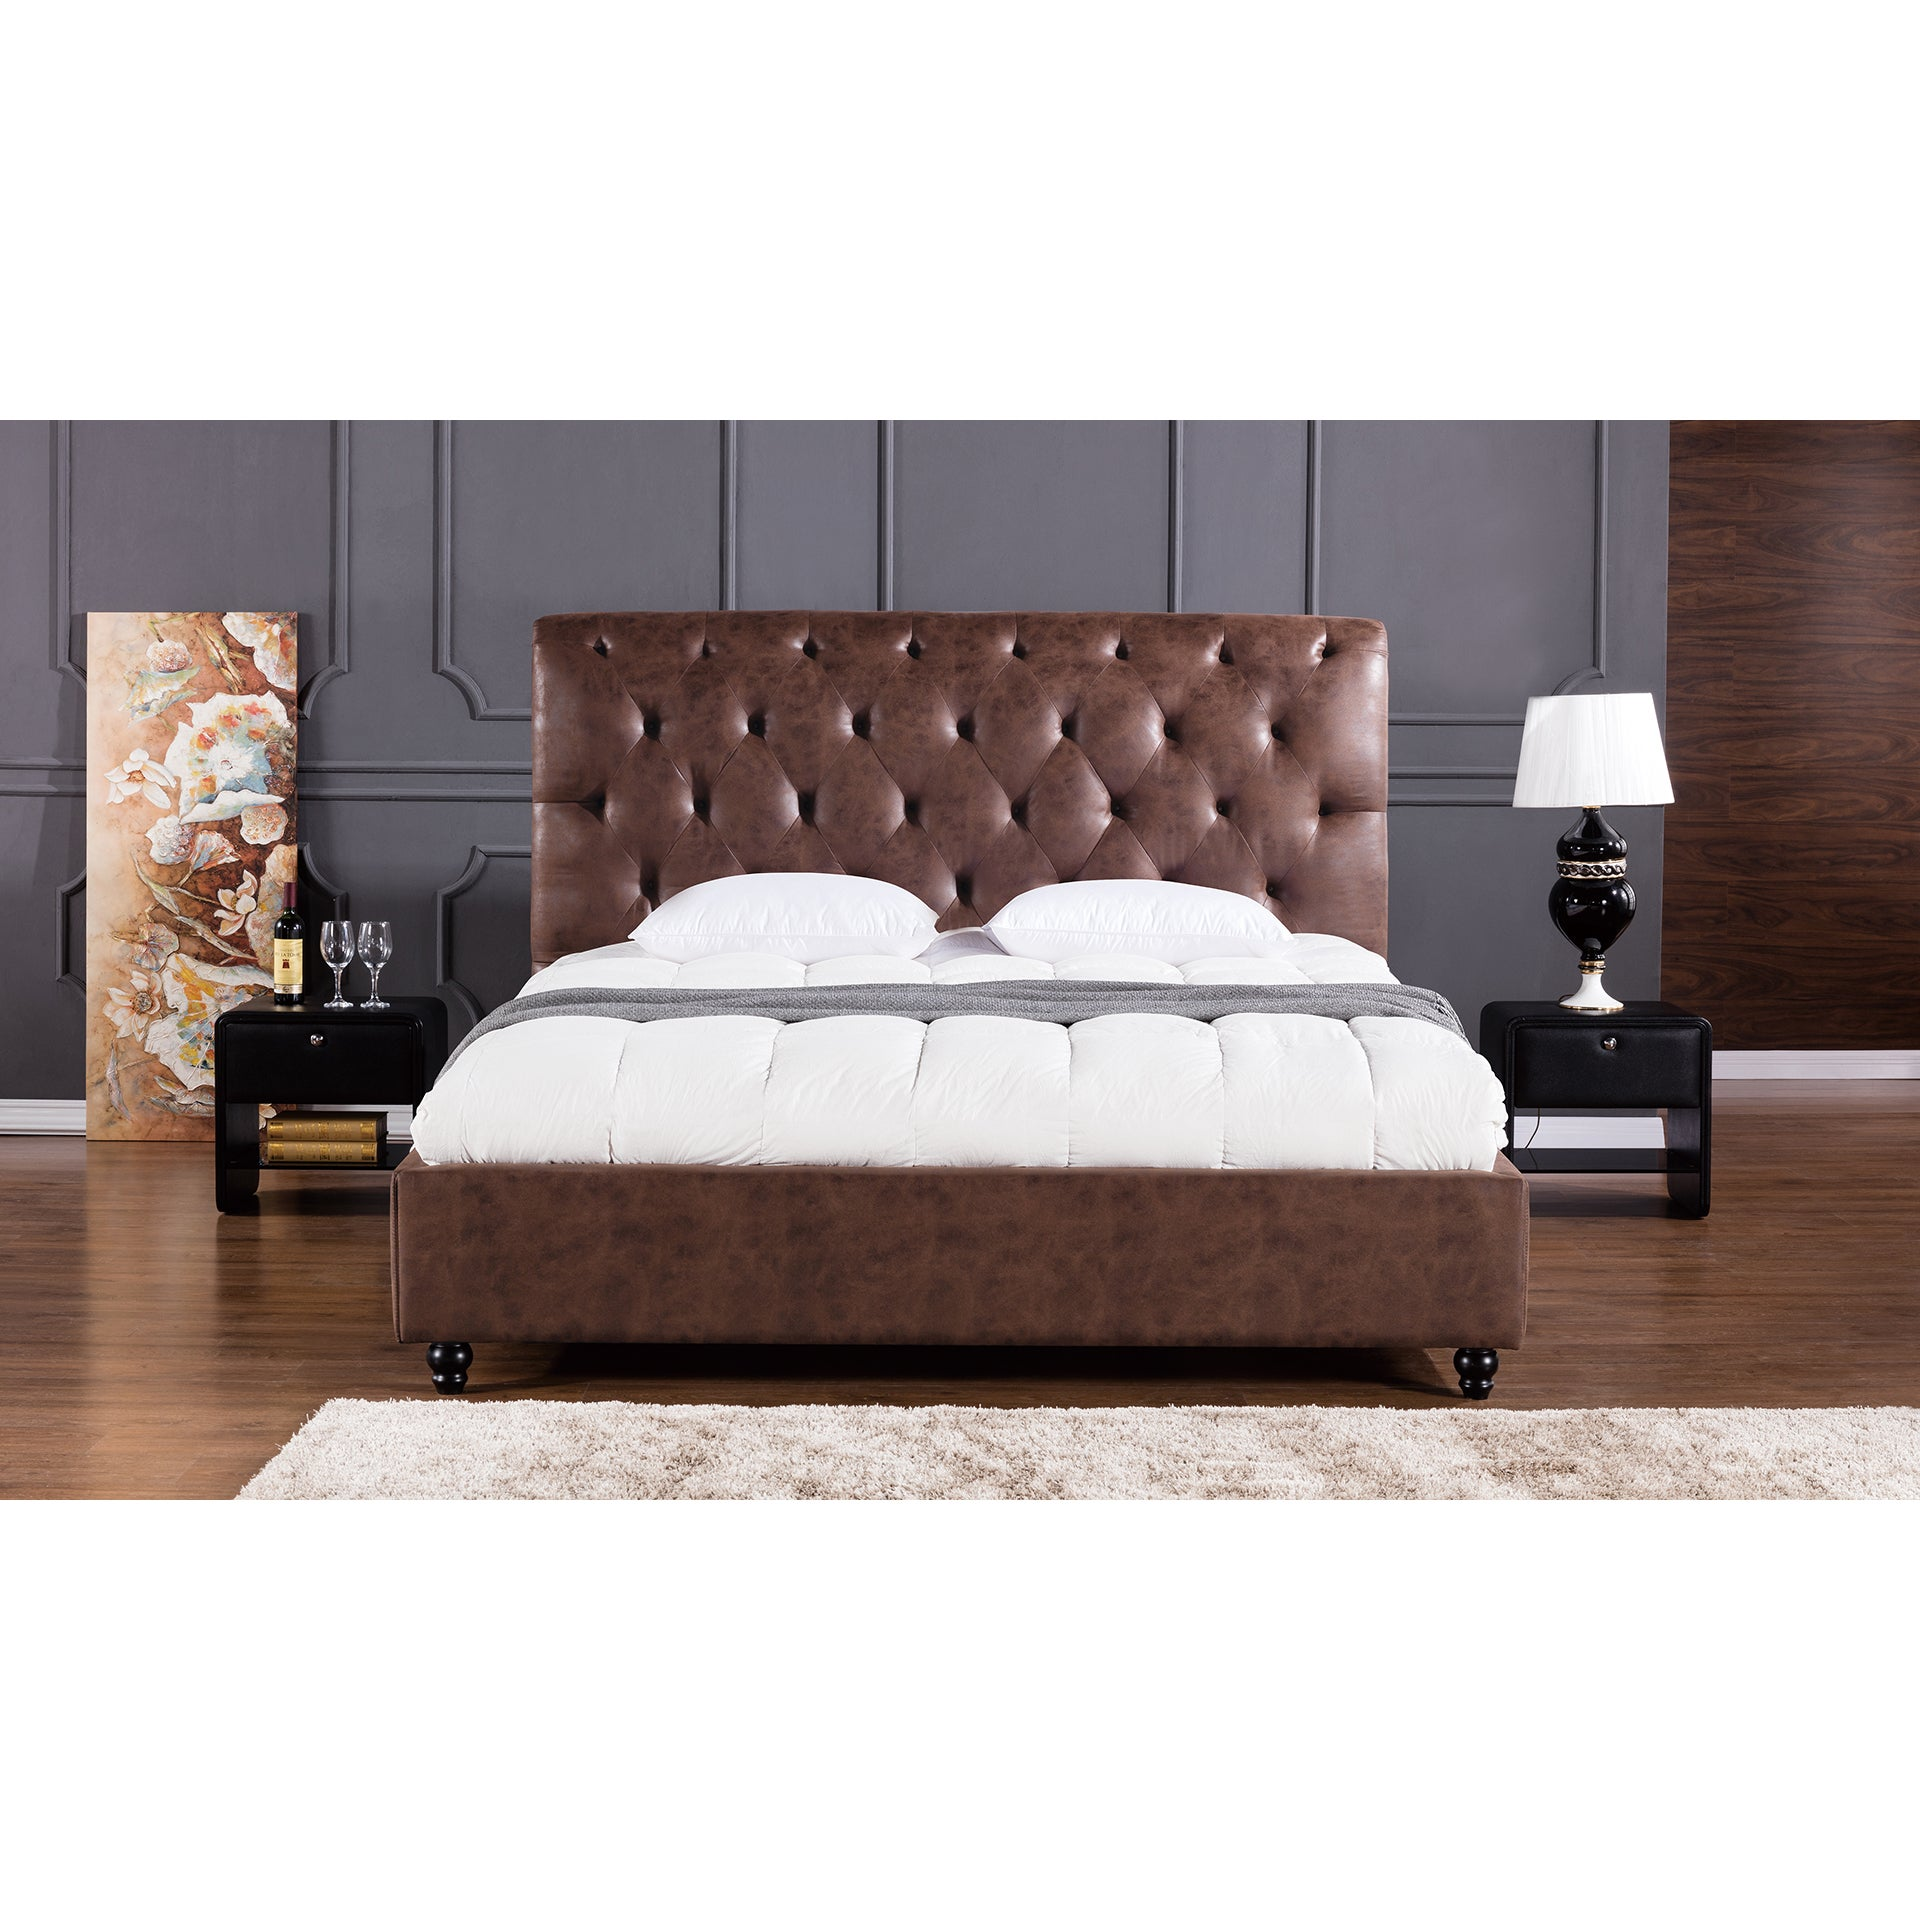 American Eagle Brown Leather Air Fabric Bed (Queen)